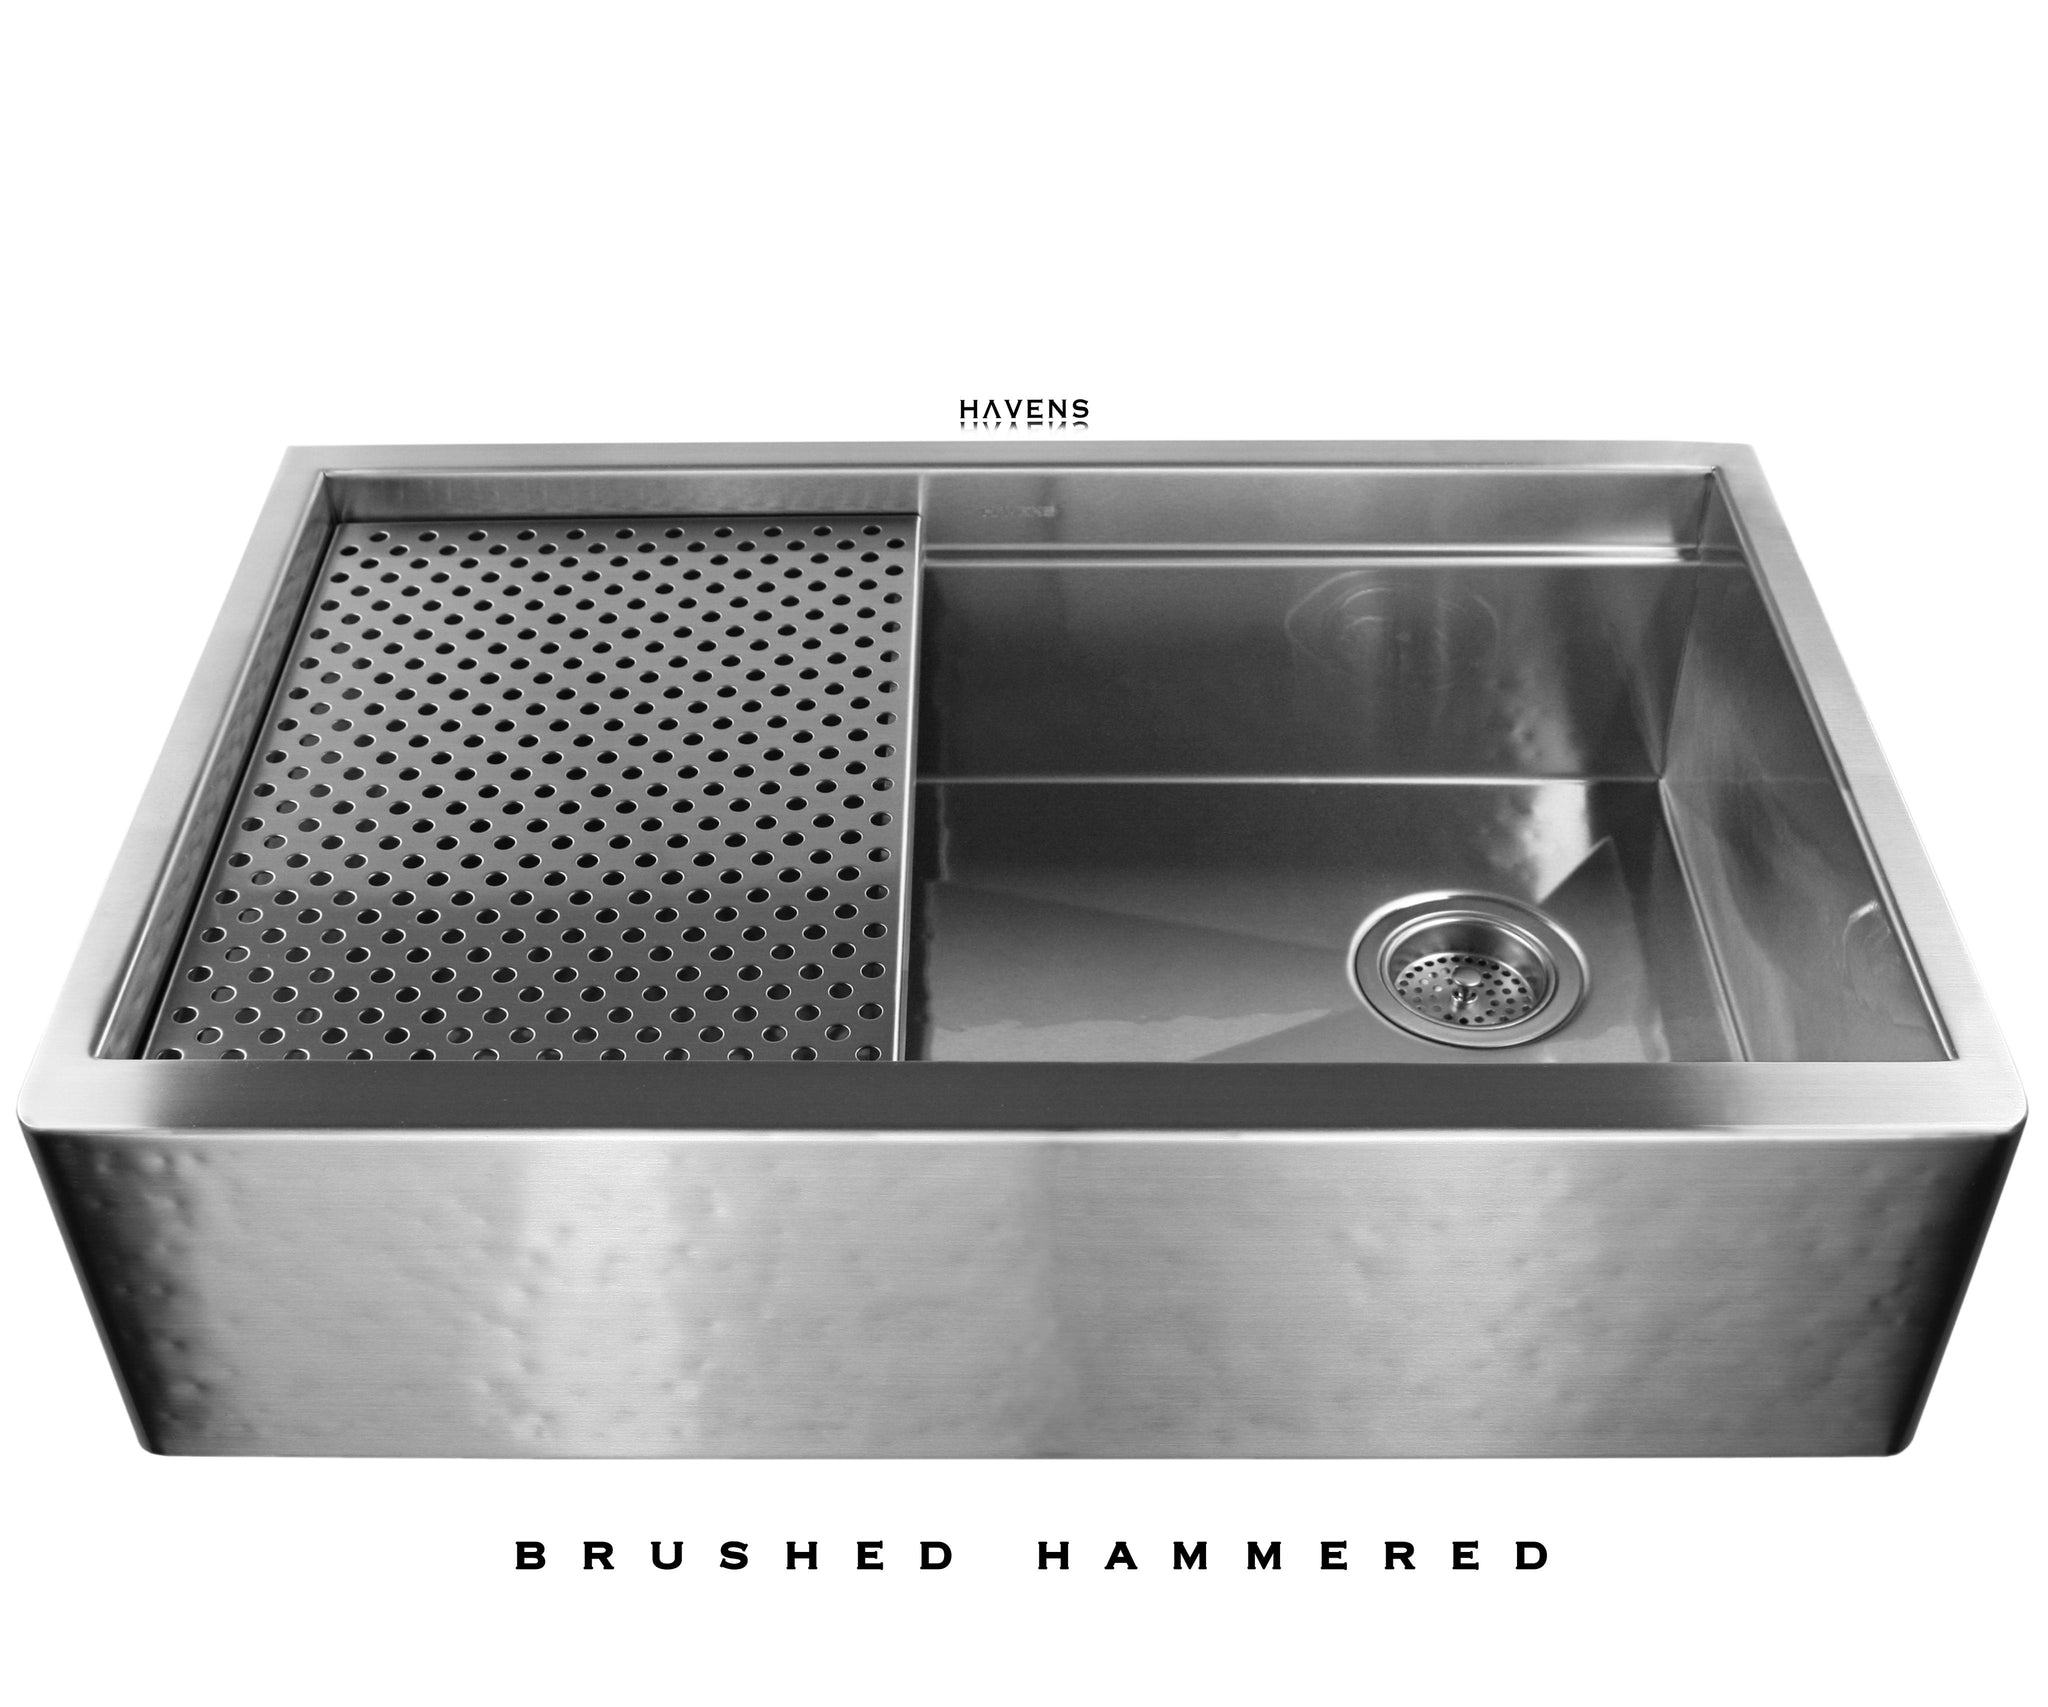 Legacy - Legacy Brushed Hammered Stainless Steel Farmhouse Sink - Undermount